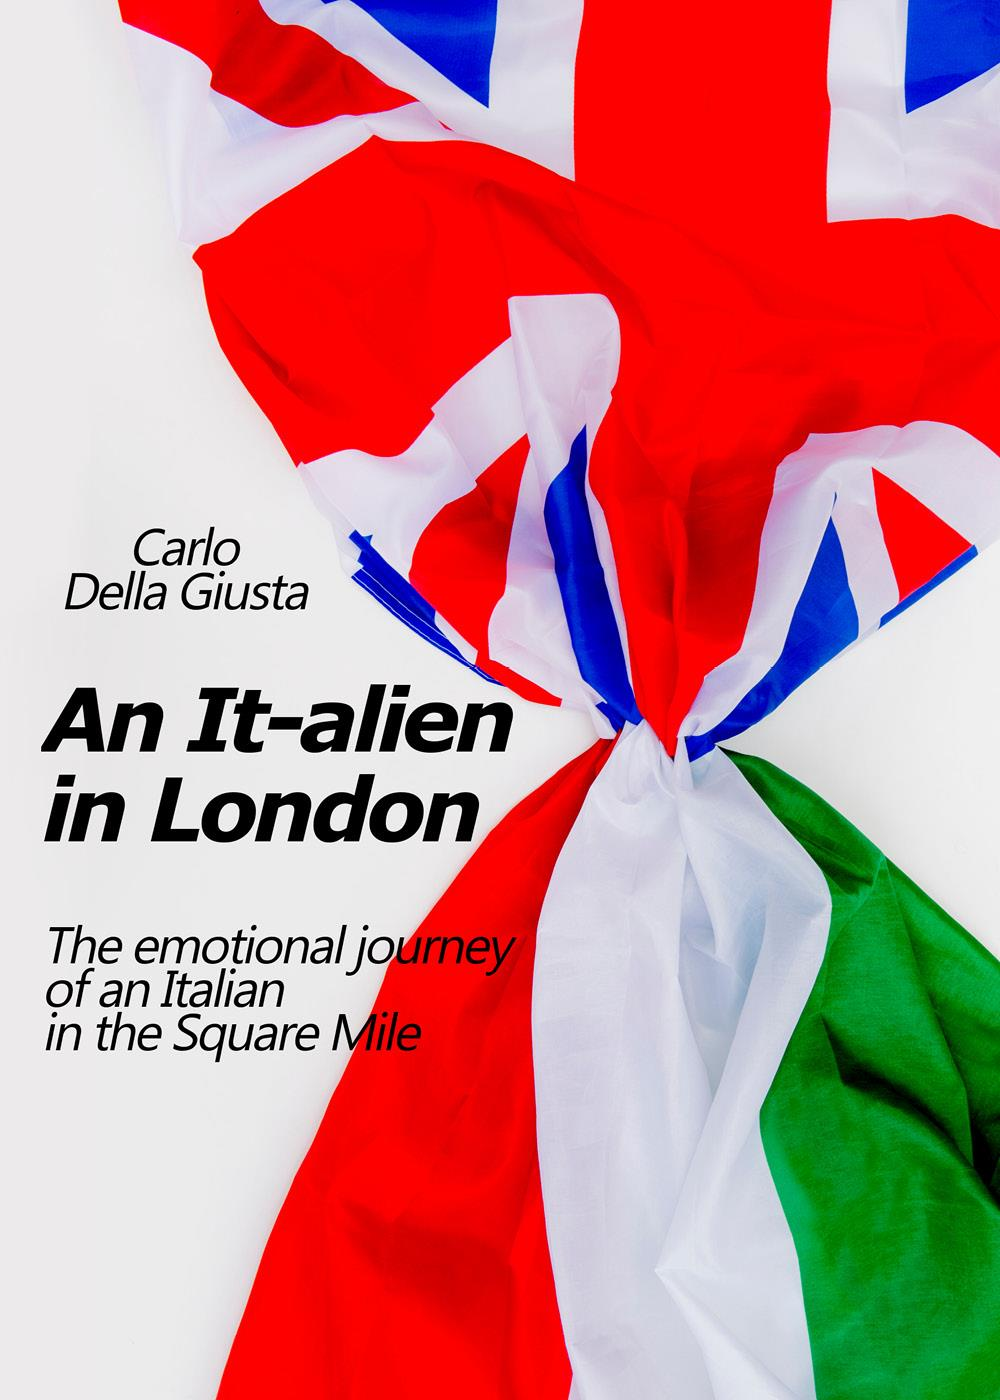 An It-alien in London. The emotional journey of an Italian in the Square Mile